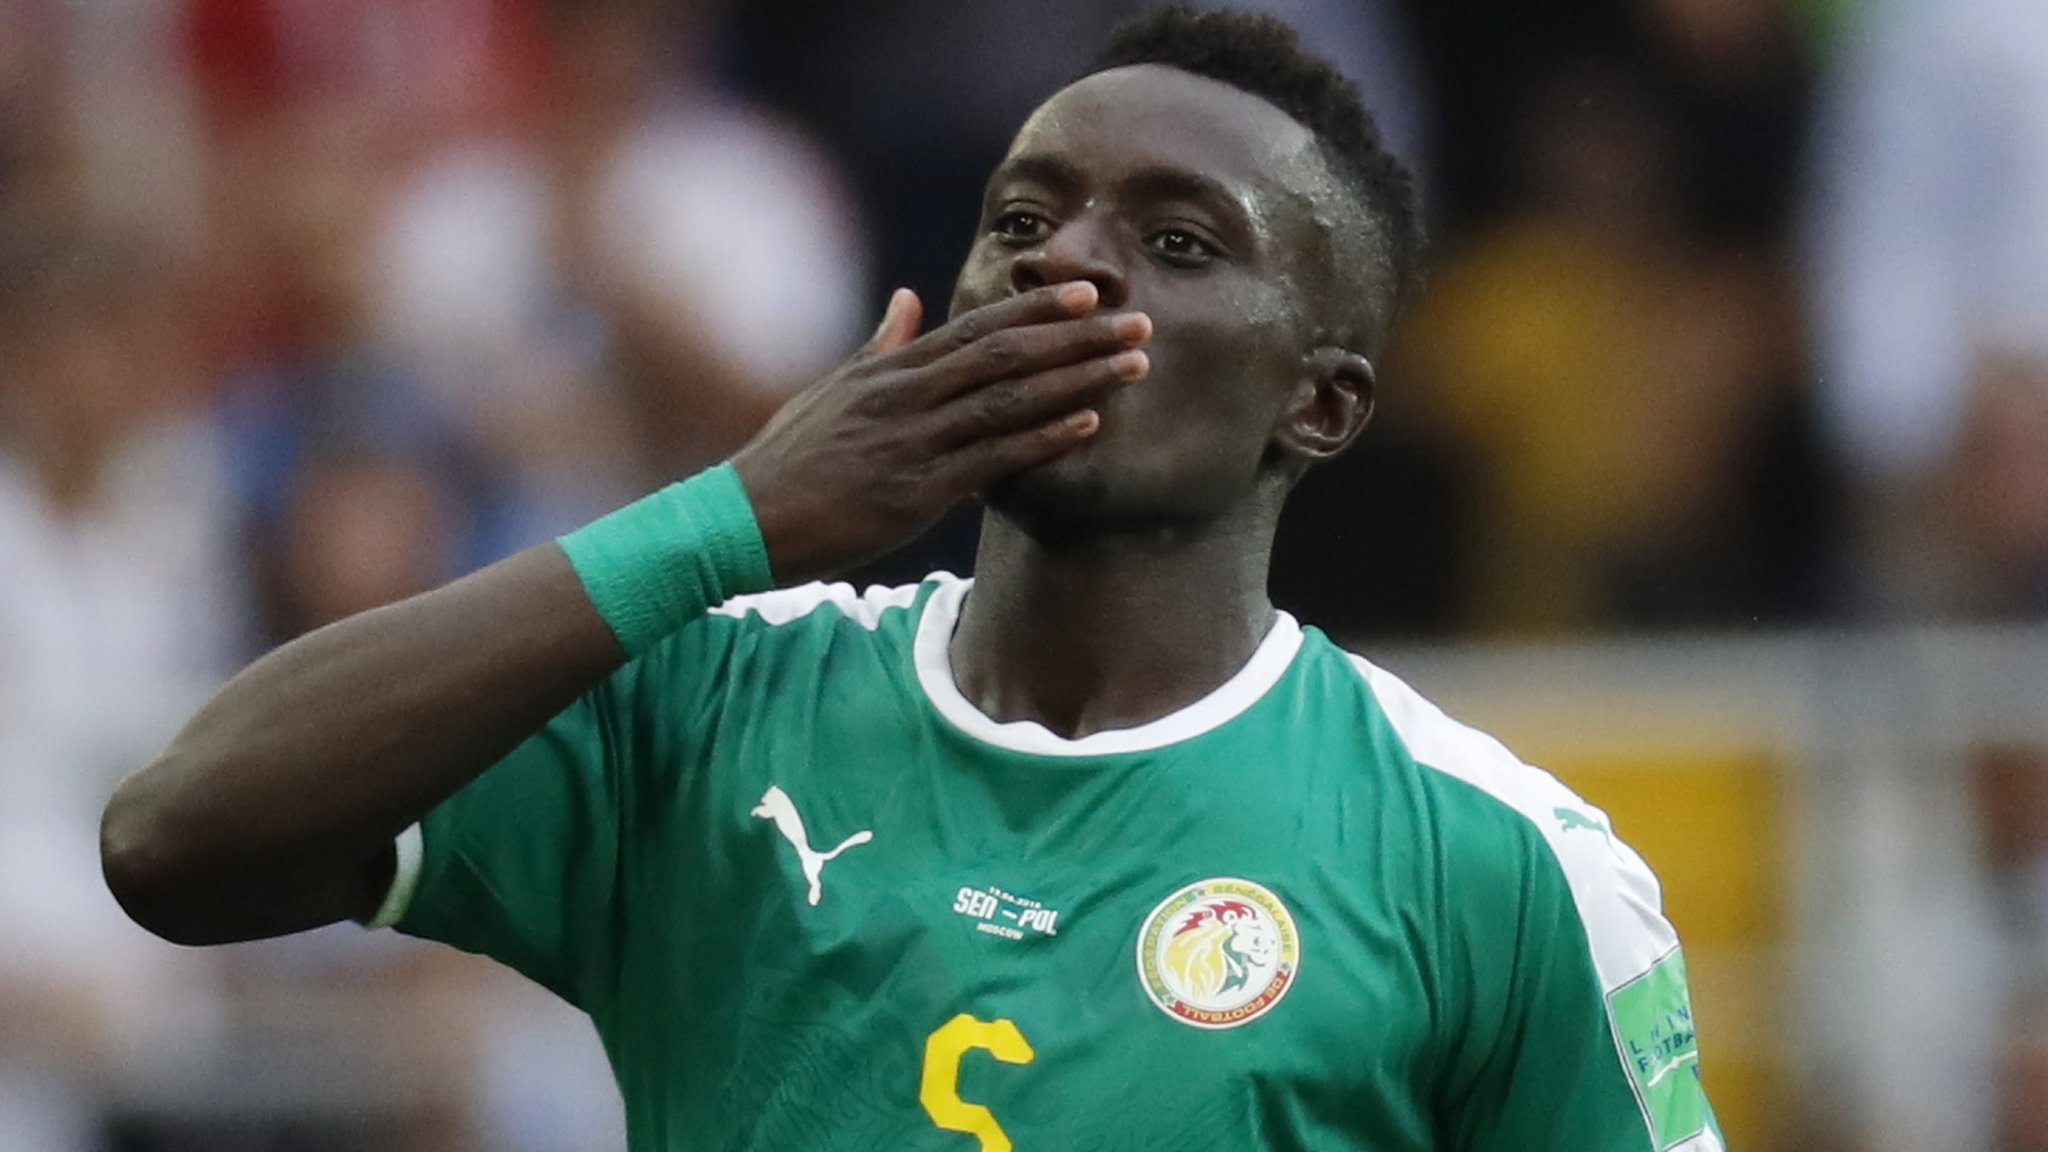 World Cup 2018: Poland 1-2 Senegal - how players rated